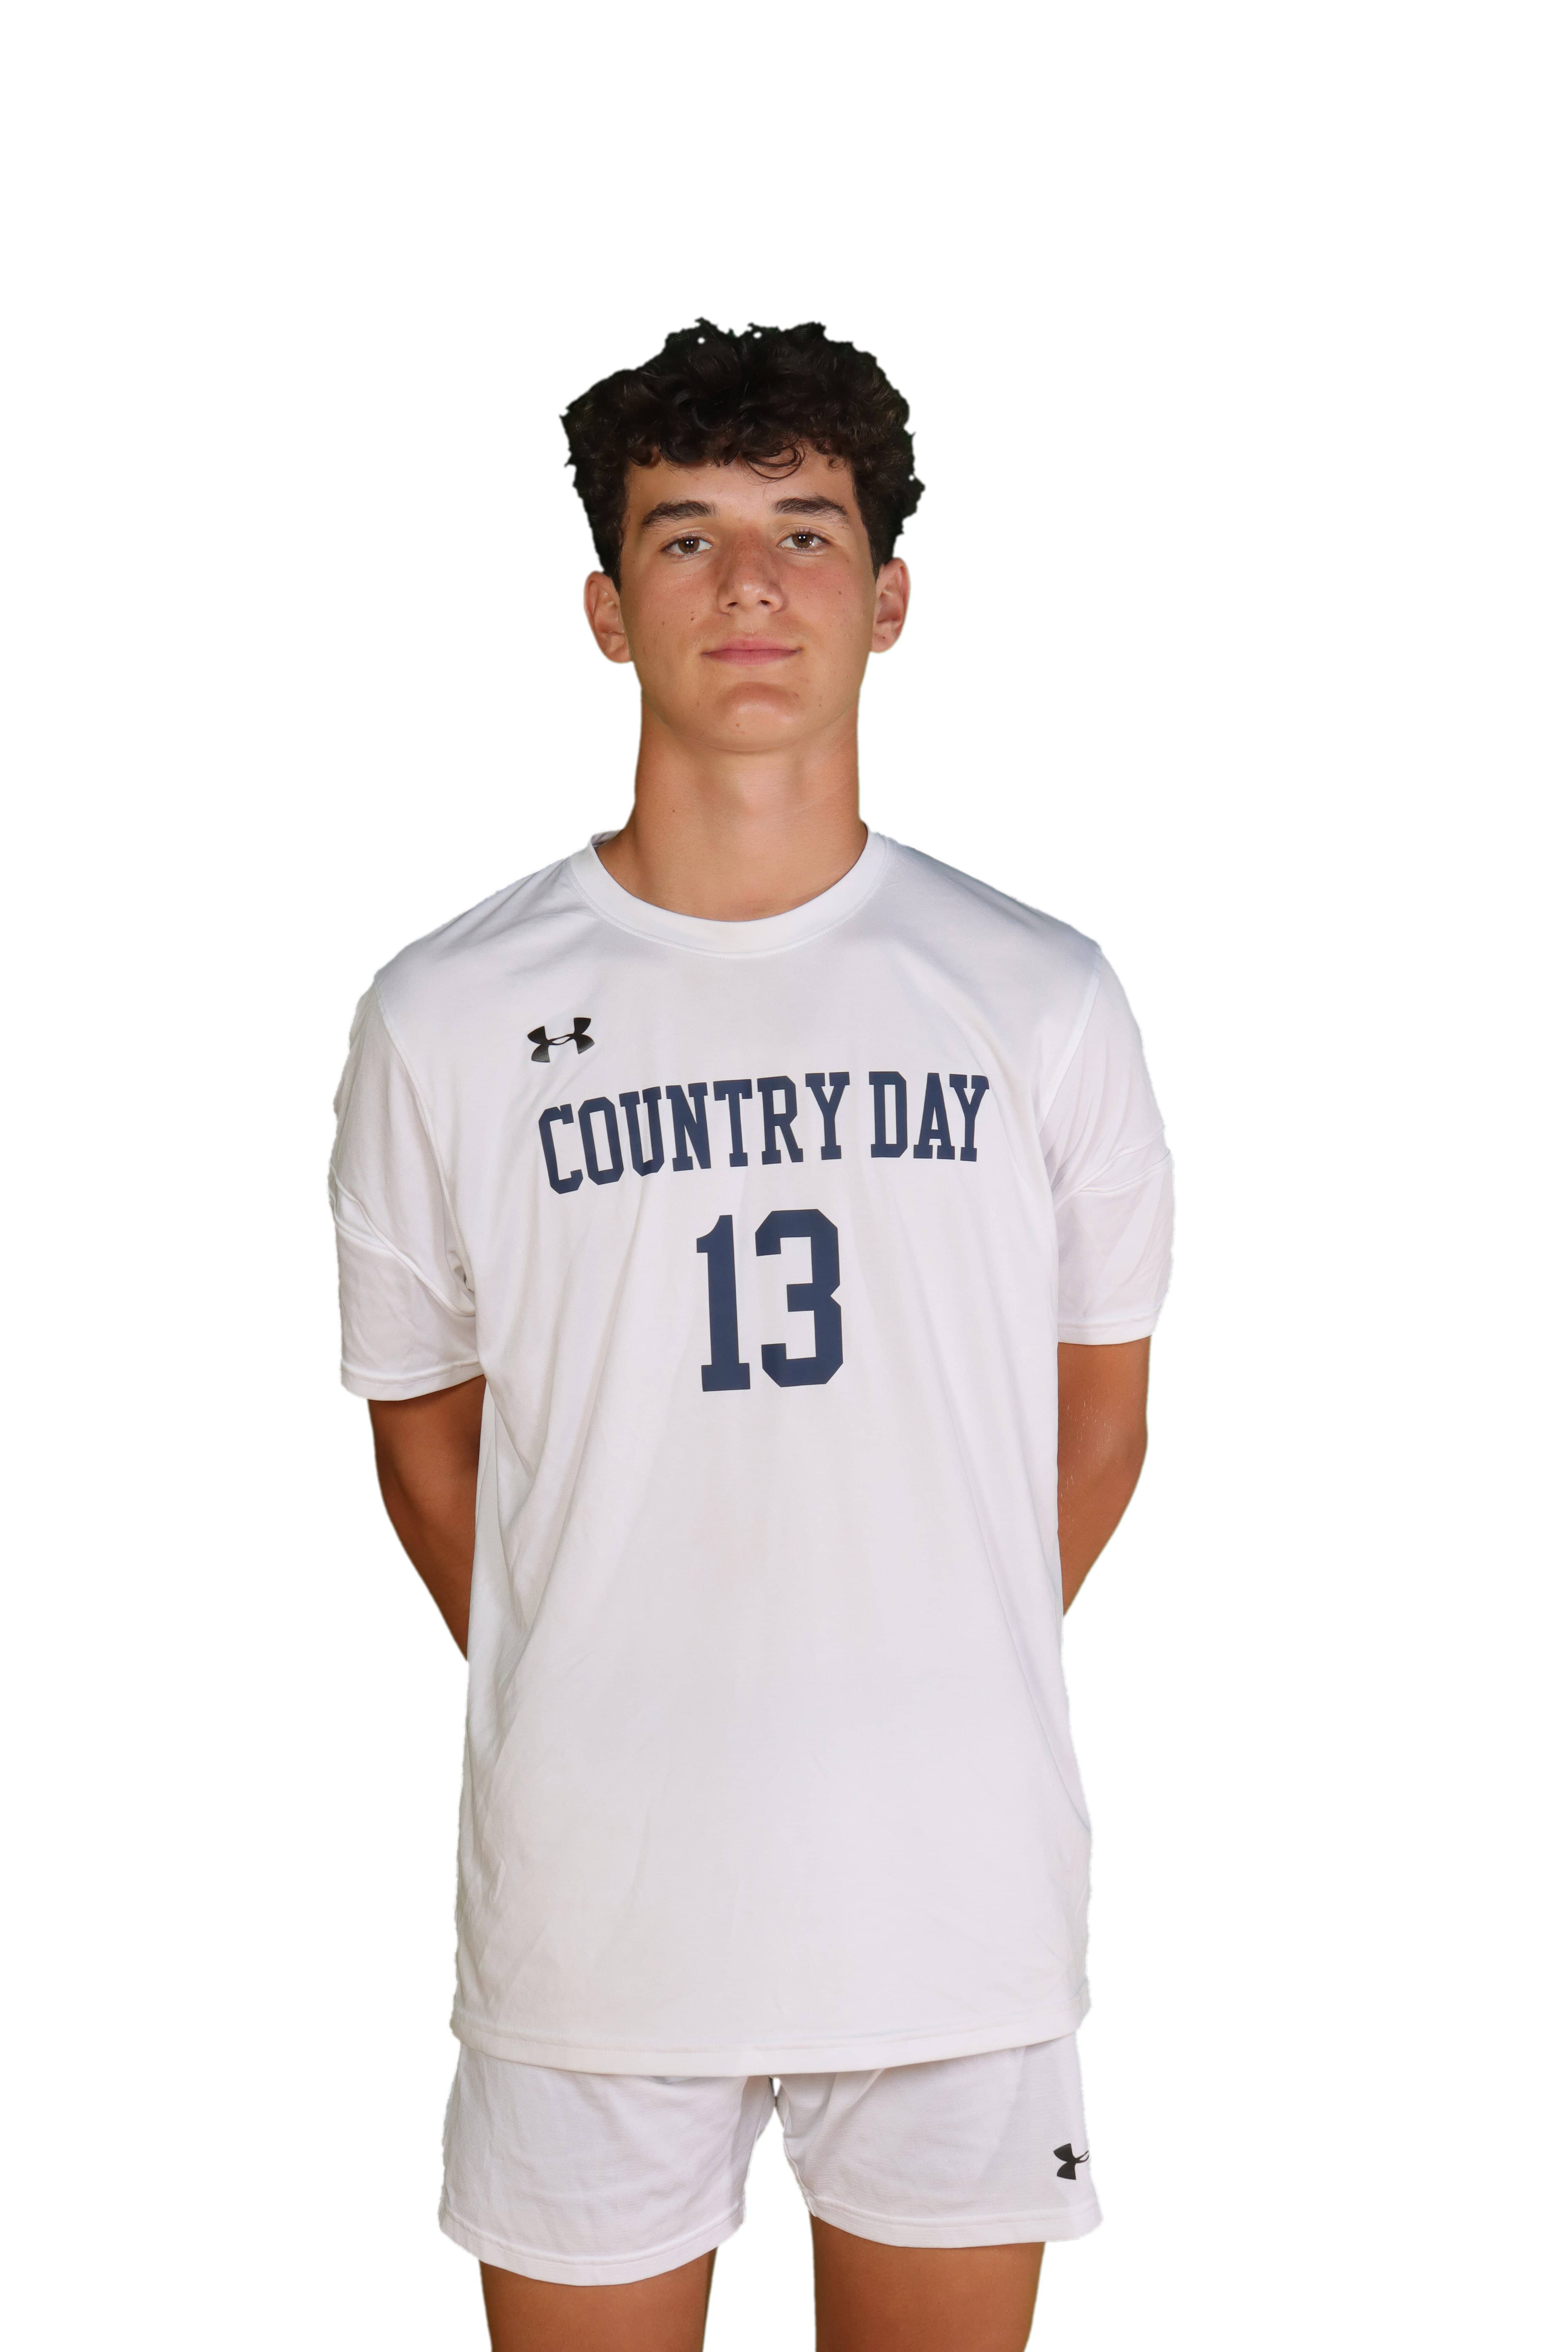 Cincinnati Country Day's Trey Vredeveld was a second-team All-Ohio selection in 2020. He scored six times and had two assists in seven games.